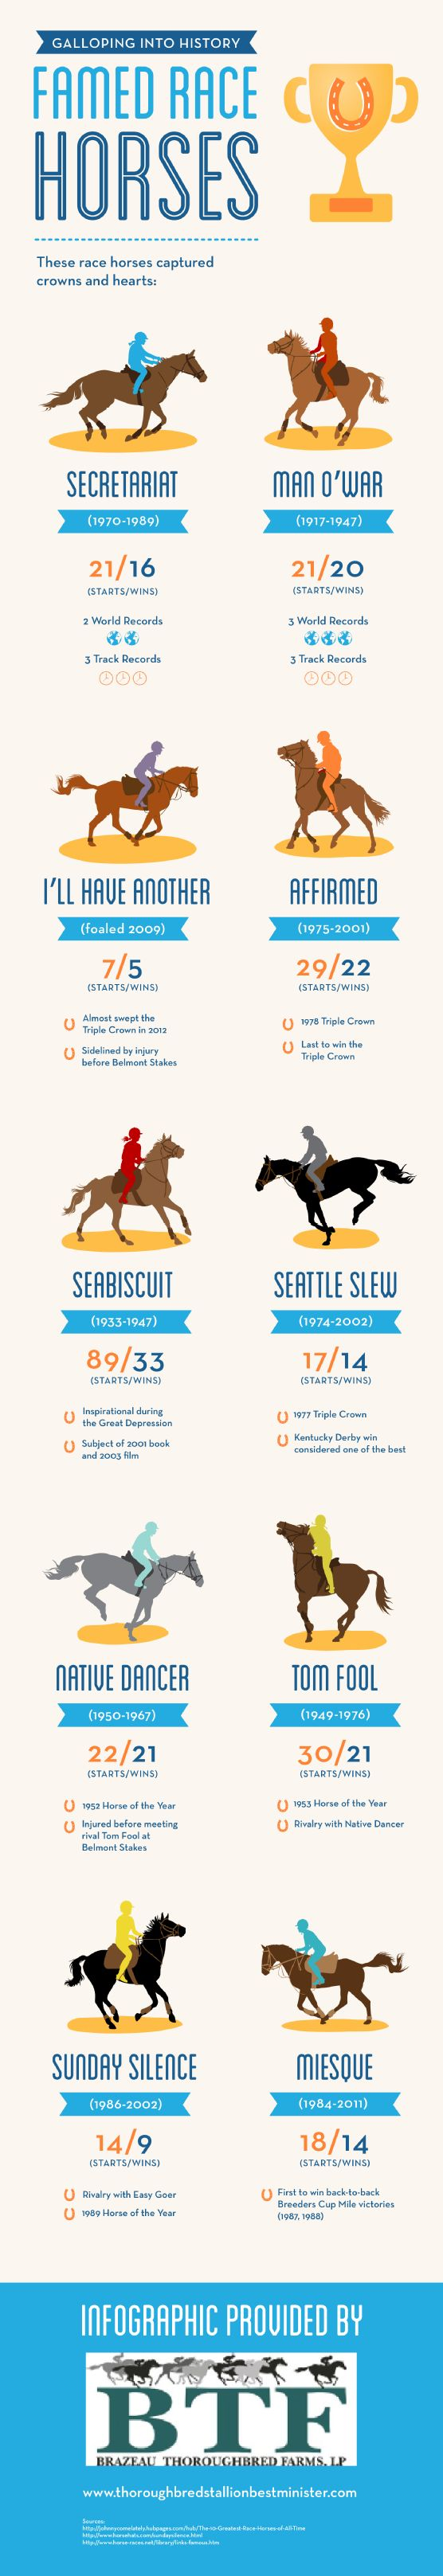 As Seabiscuit proved during the Great Depression, race horses can unite people in times of turmoil and capture the hearts of a nation. This infographi